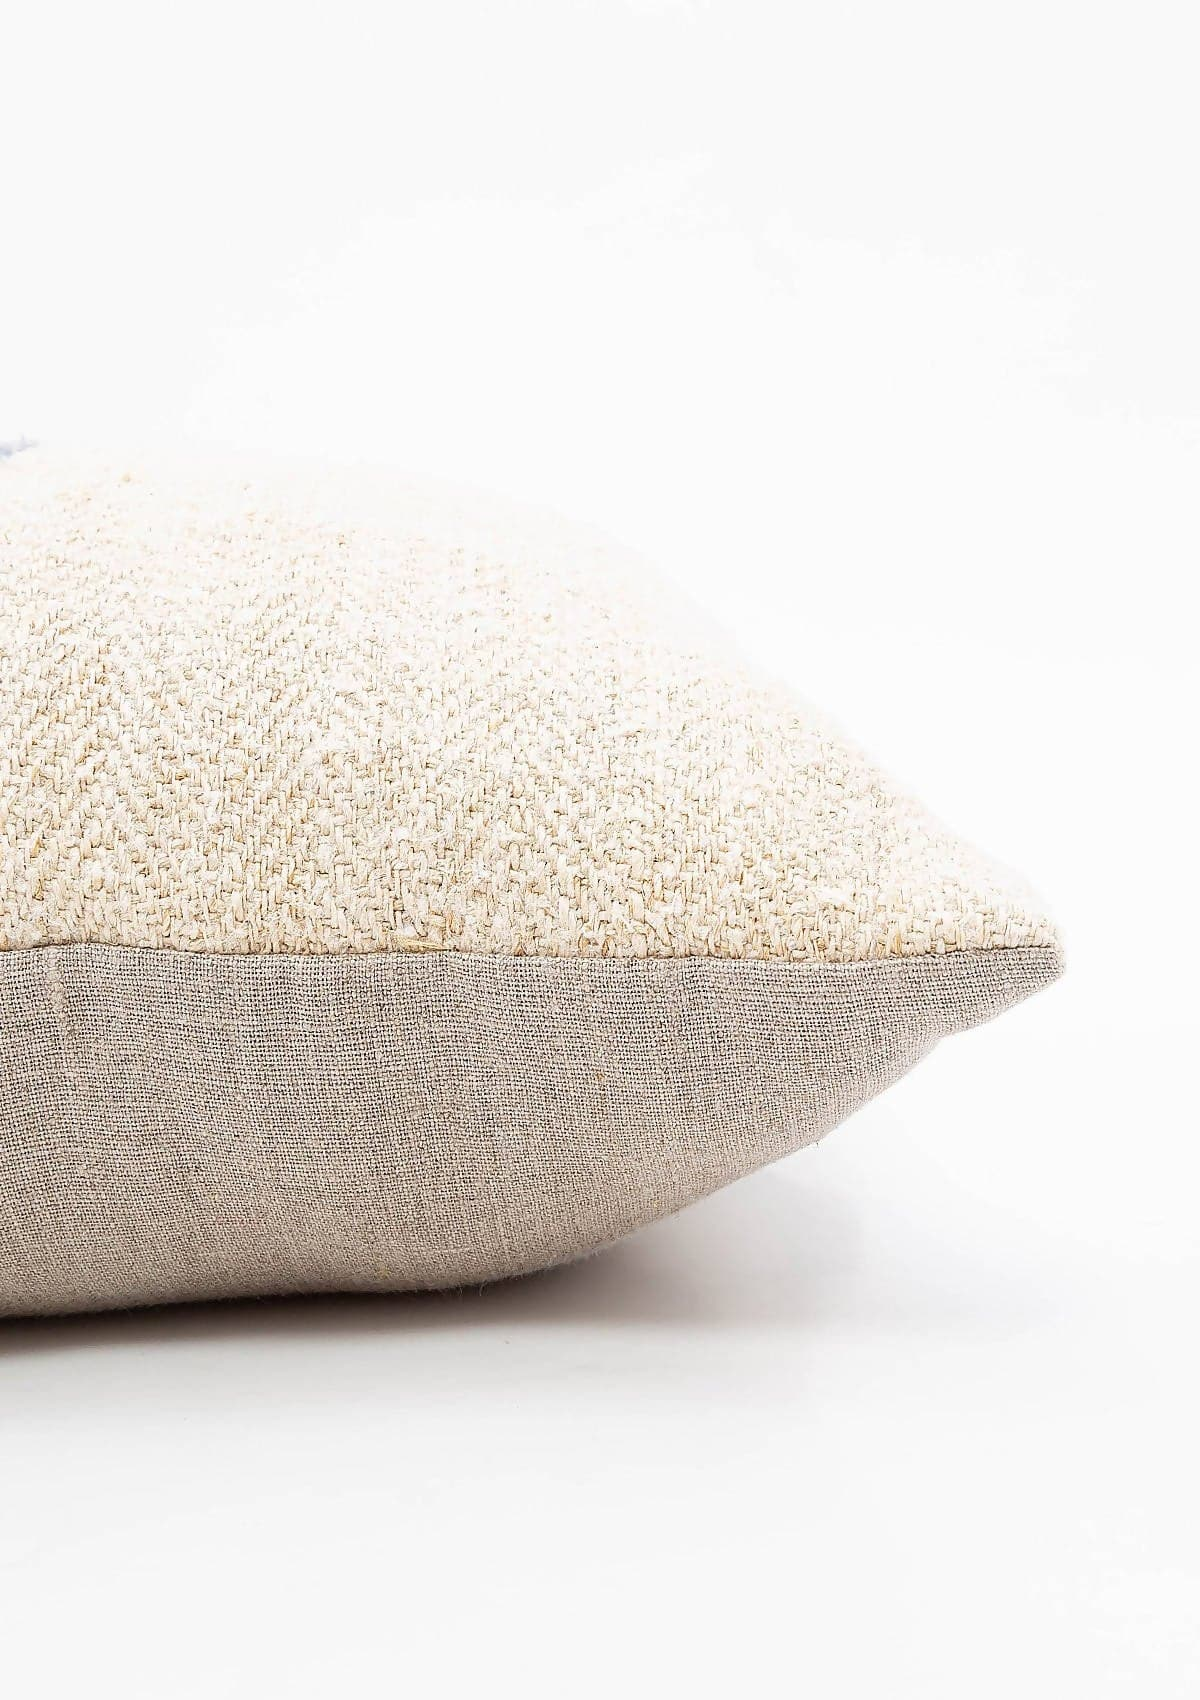 Blue Stripe Grain Sack Pillow, 18x29